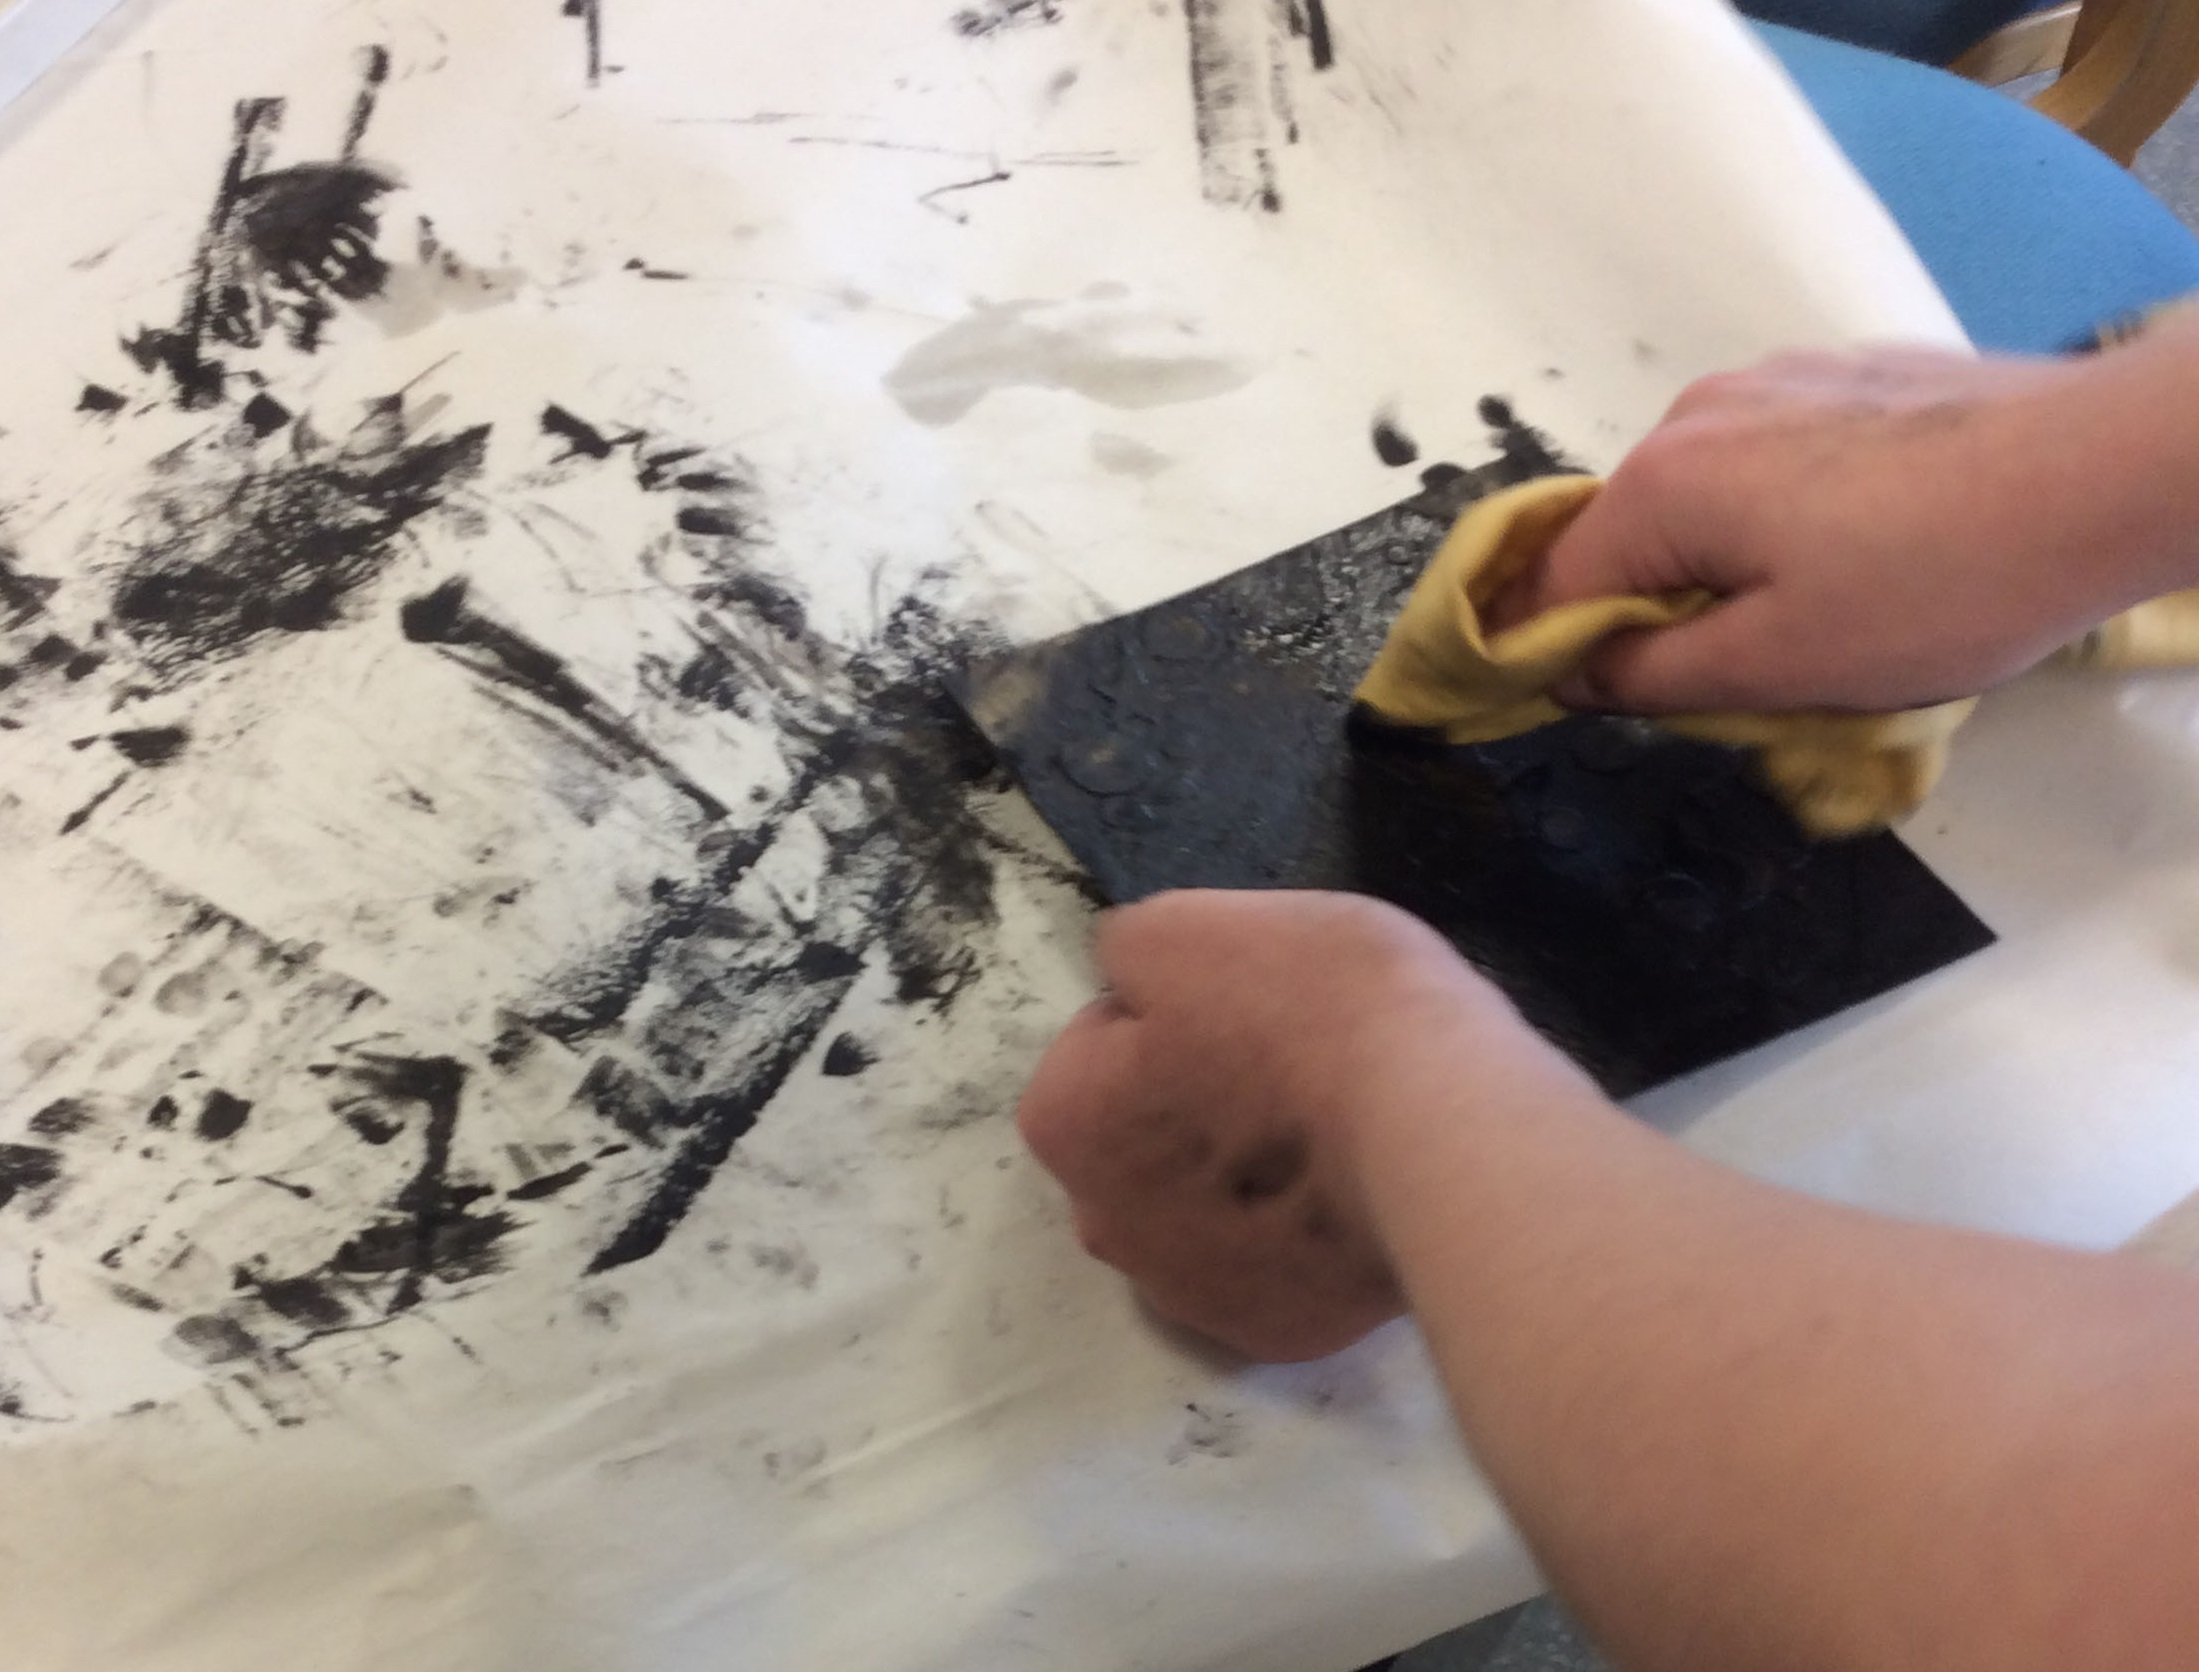 Collagraph-Printing-13.jpg#asset:1865